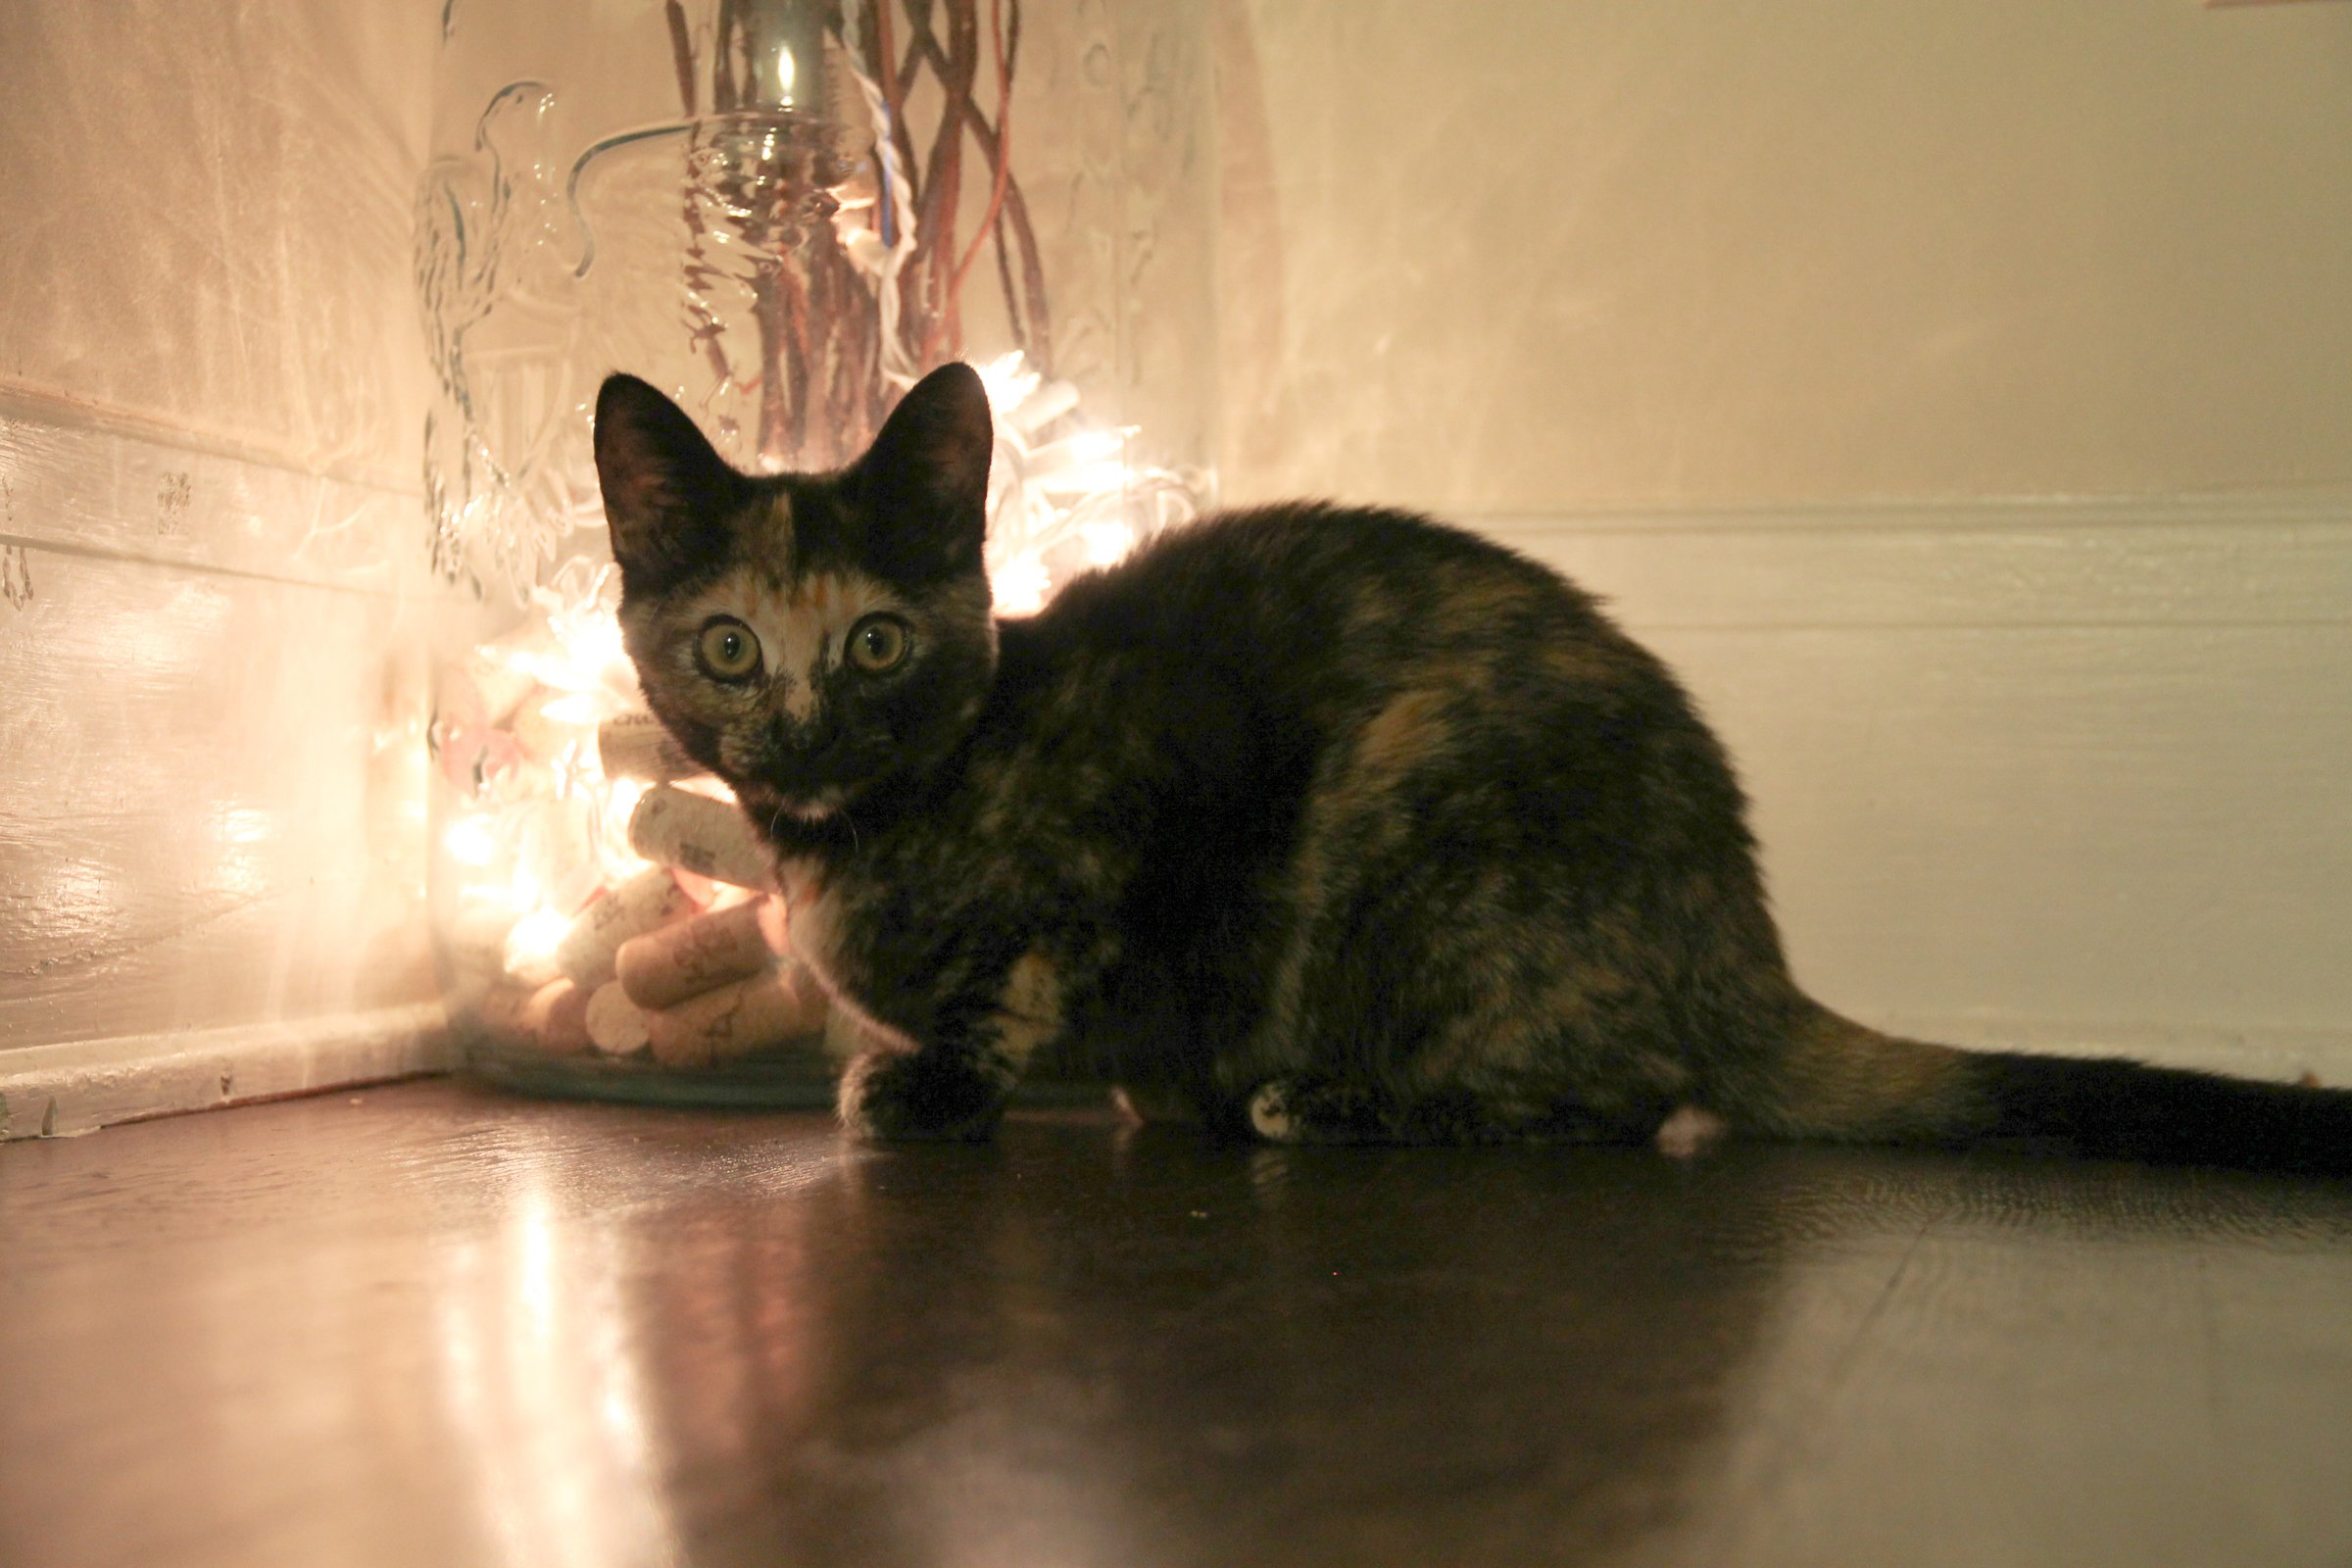 Cat Crouching on Floor by Jar with Lights